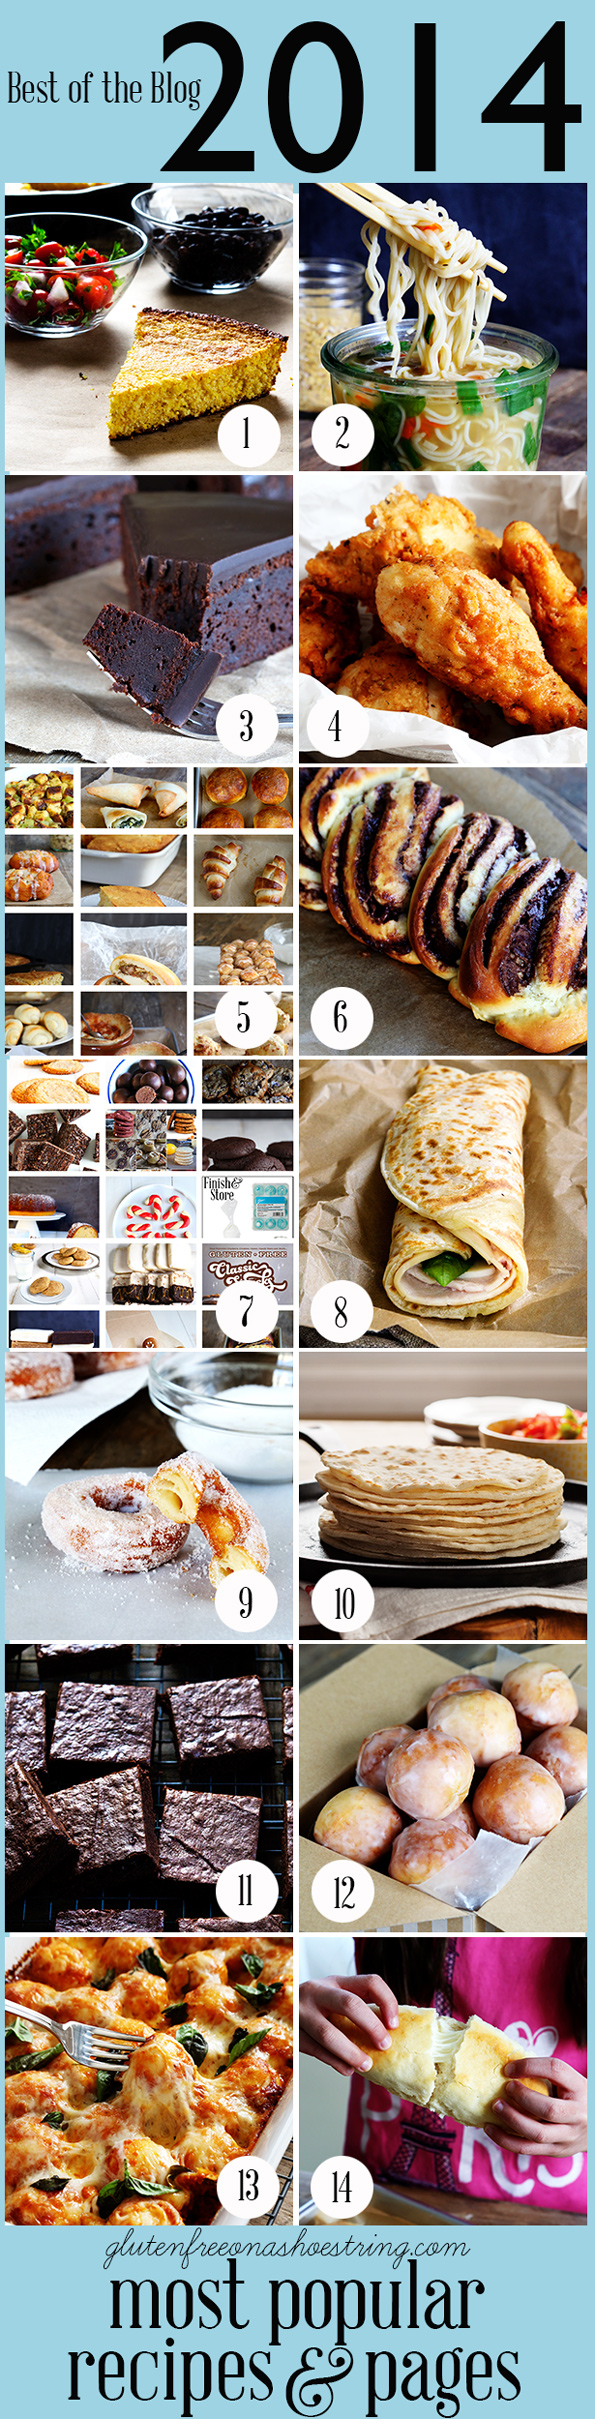 The Very Best Gluten Free Recipes, 2014 edition